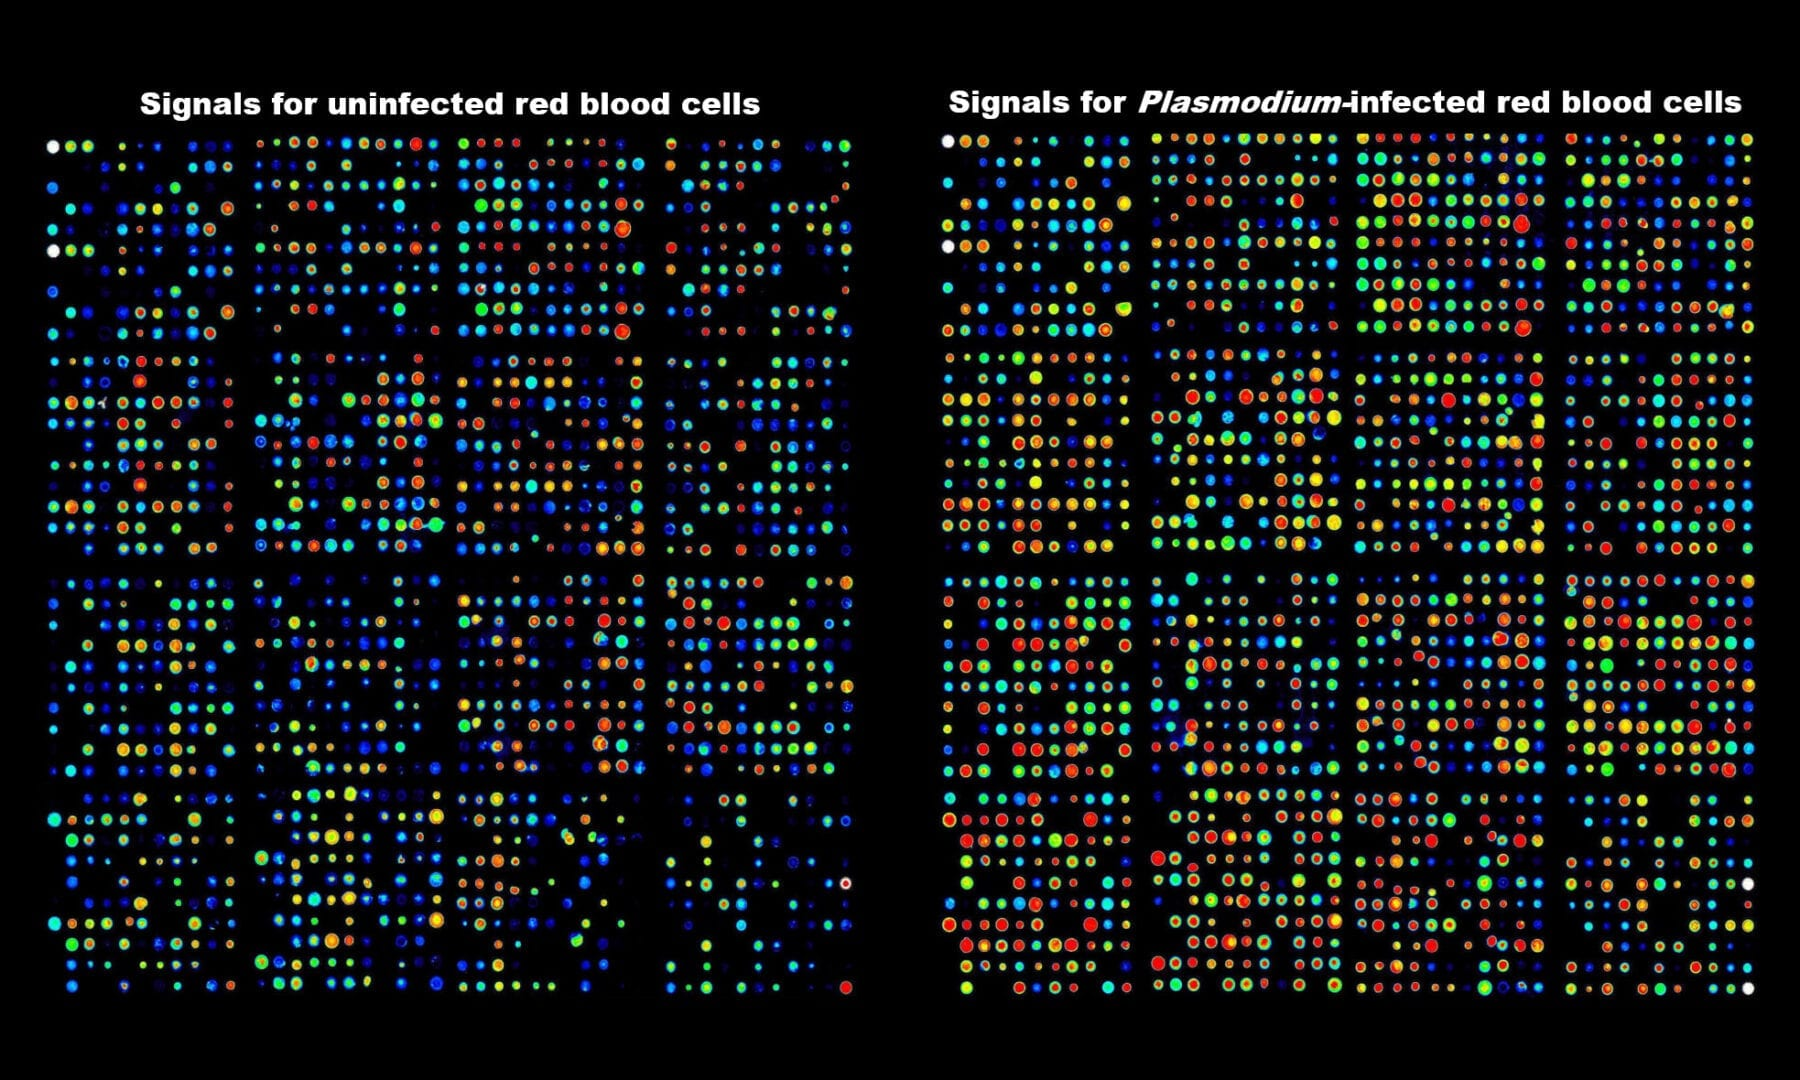 Antibody array data showing activation of kinases in human red blood cells infected with the malaria parasite.